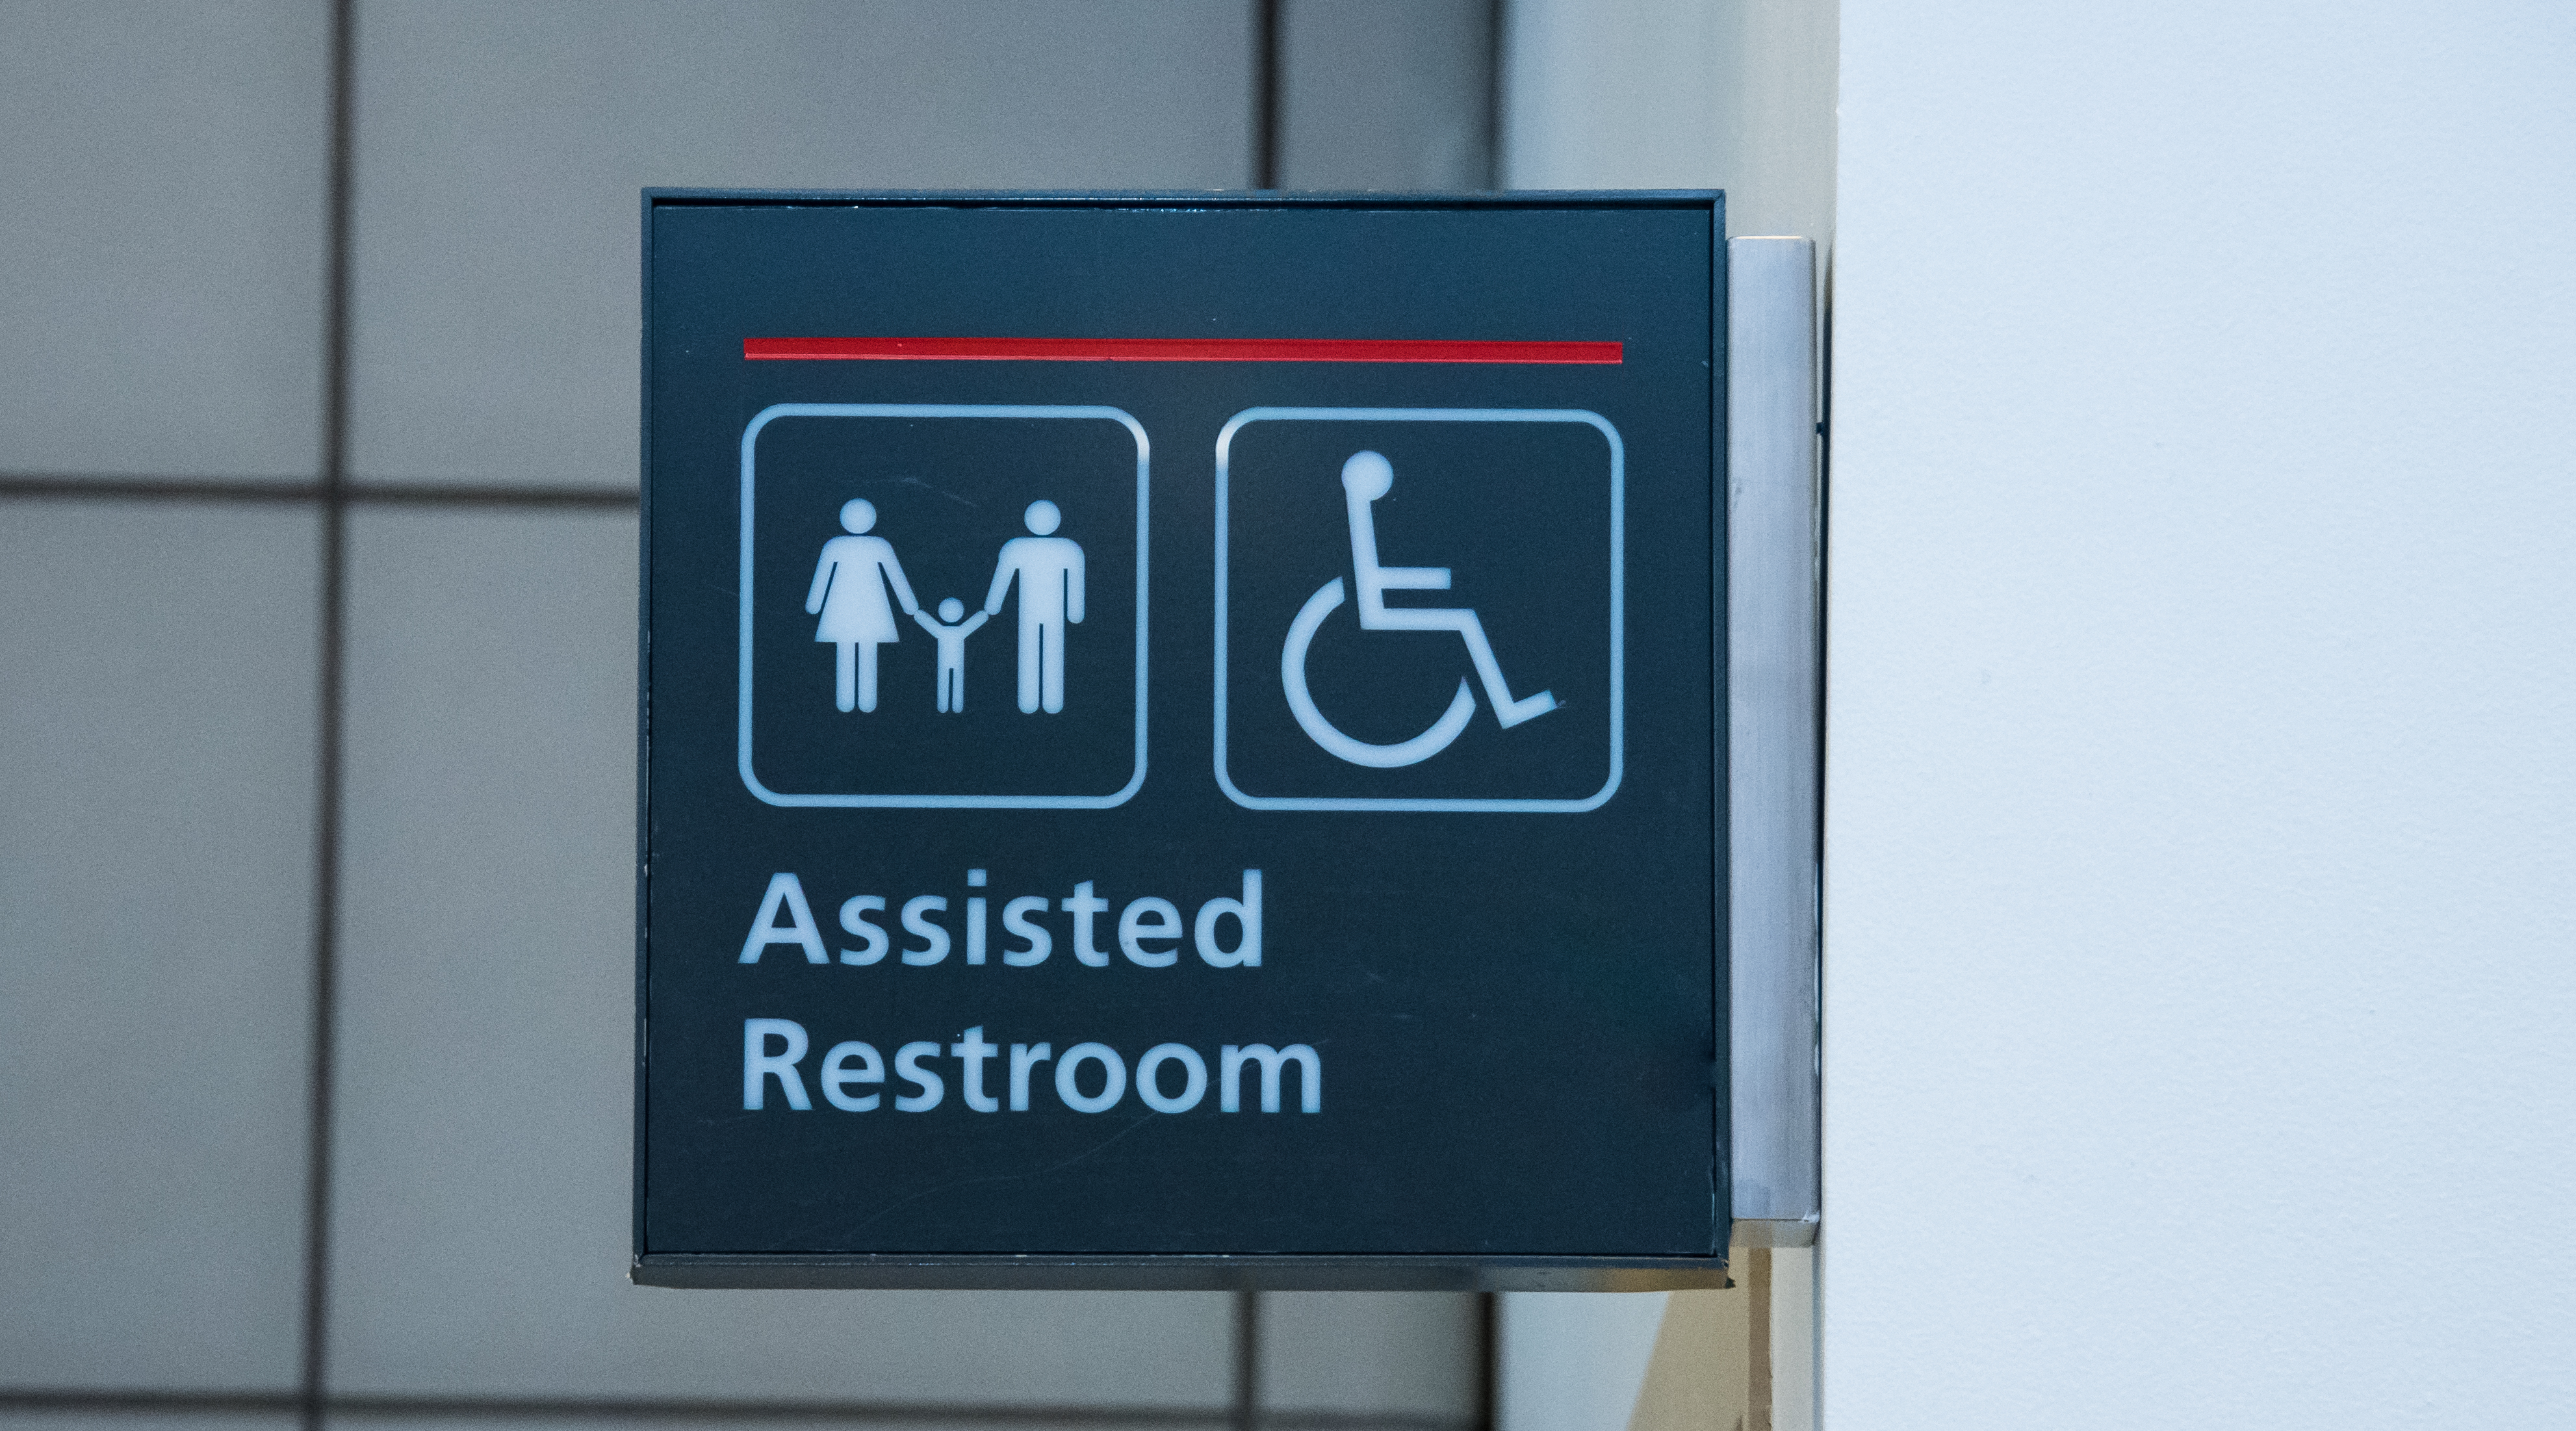 Handicap Accessible Restroom